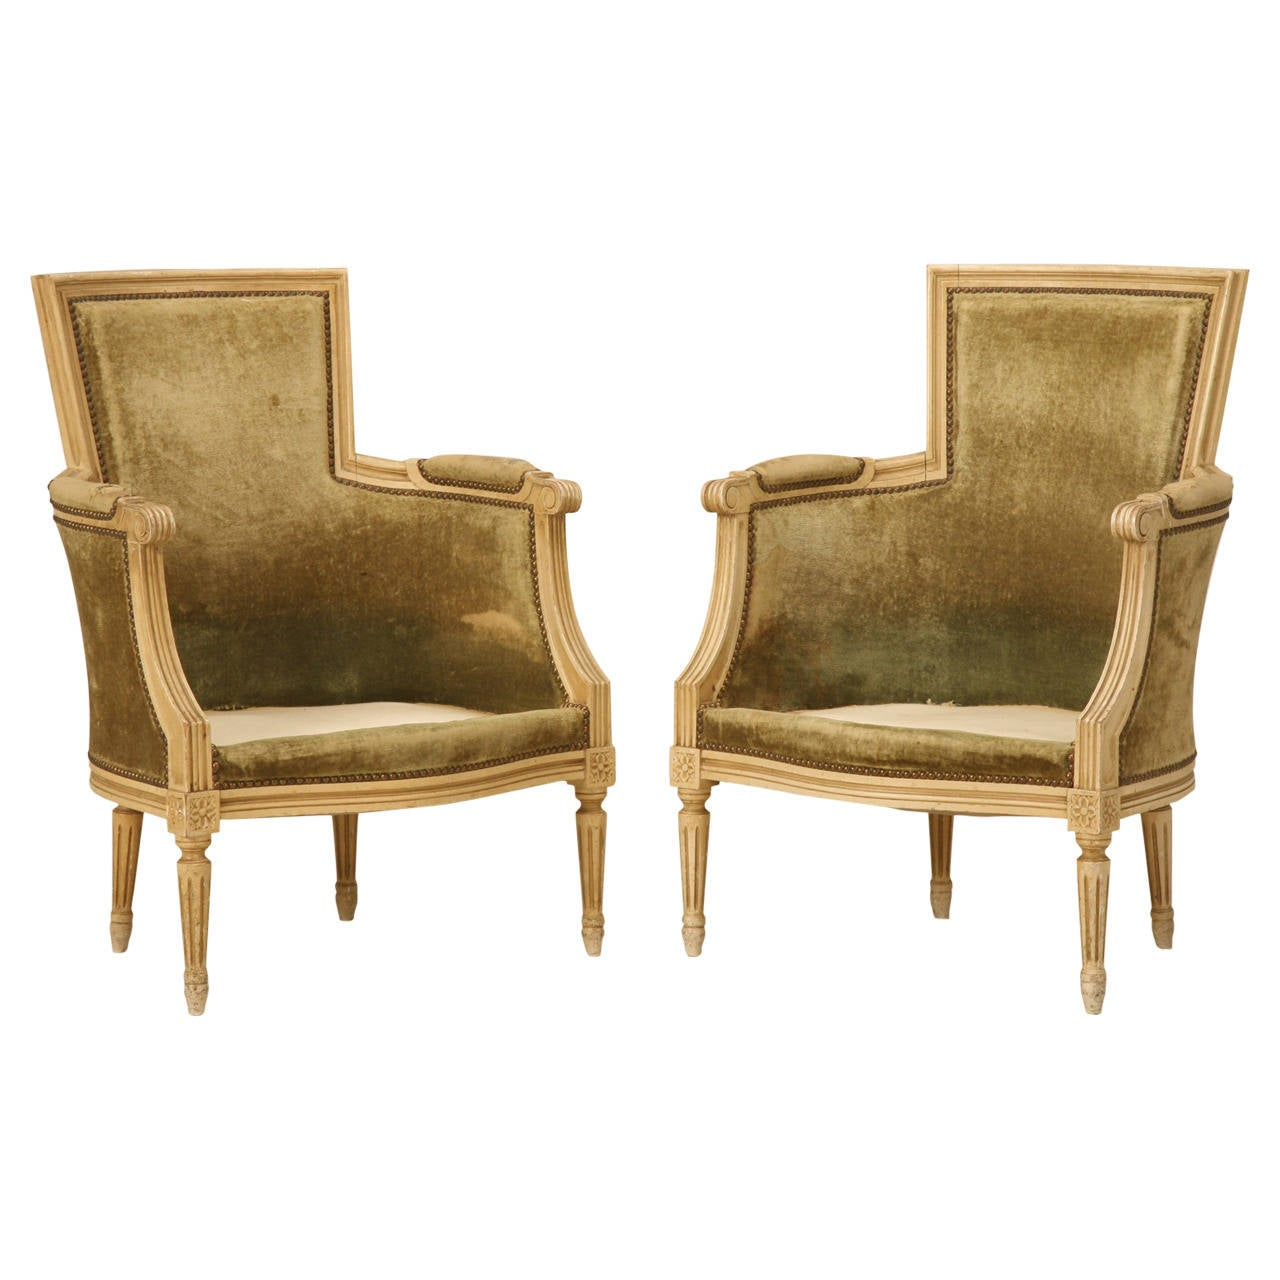 bergere chairs for sale leather couch and chair louis xvi style in original paint